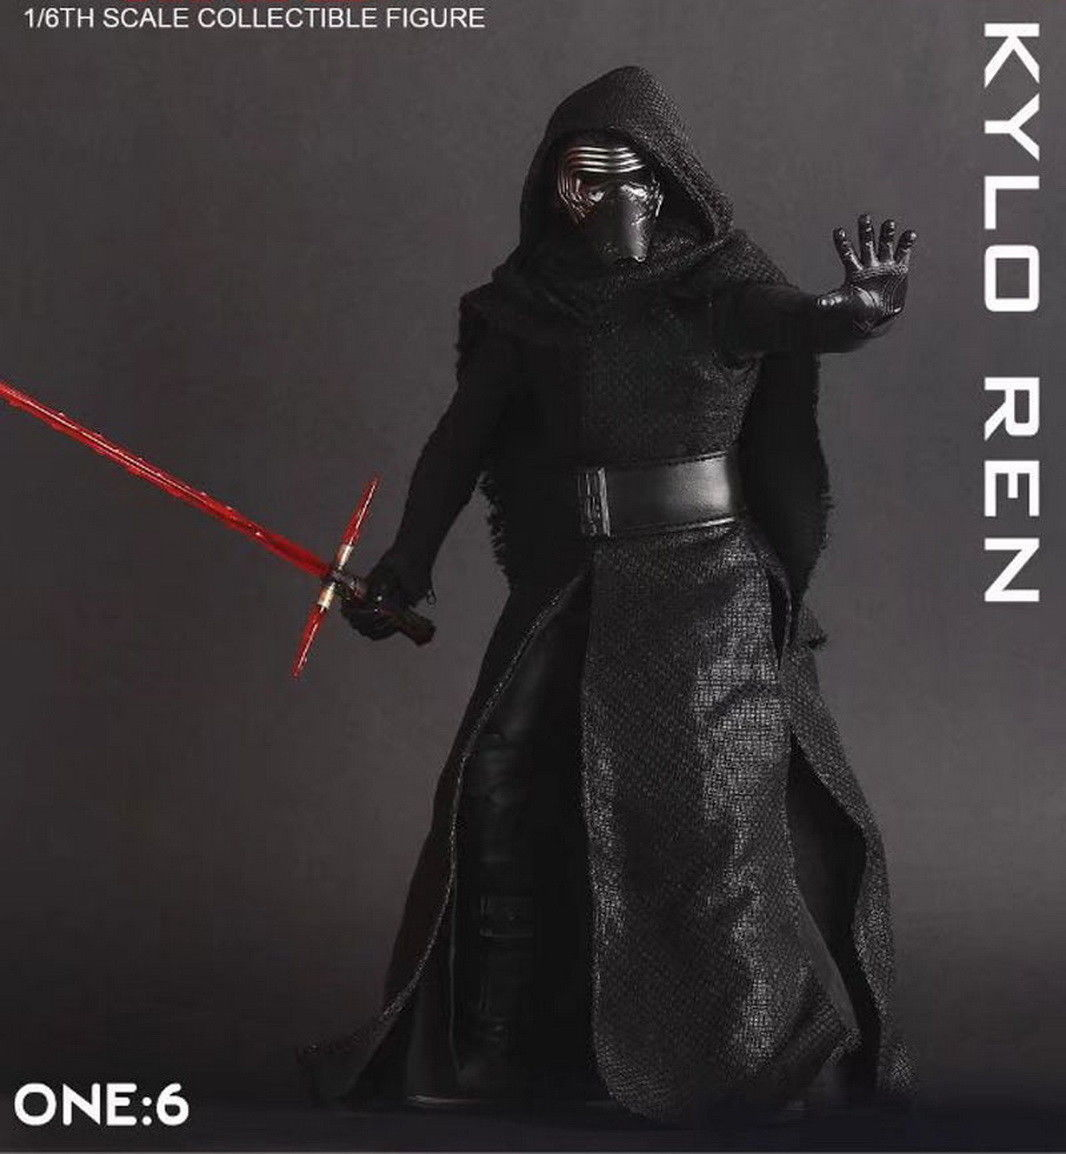 Crazy Toys 1/6TH SCALE Star Wars Kylo Ren Model Action Figure Toy Doll Statue New In Retail Box new hot star wars 7 the force awakens kylo ren pvc action figure collectible model toy 16cm